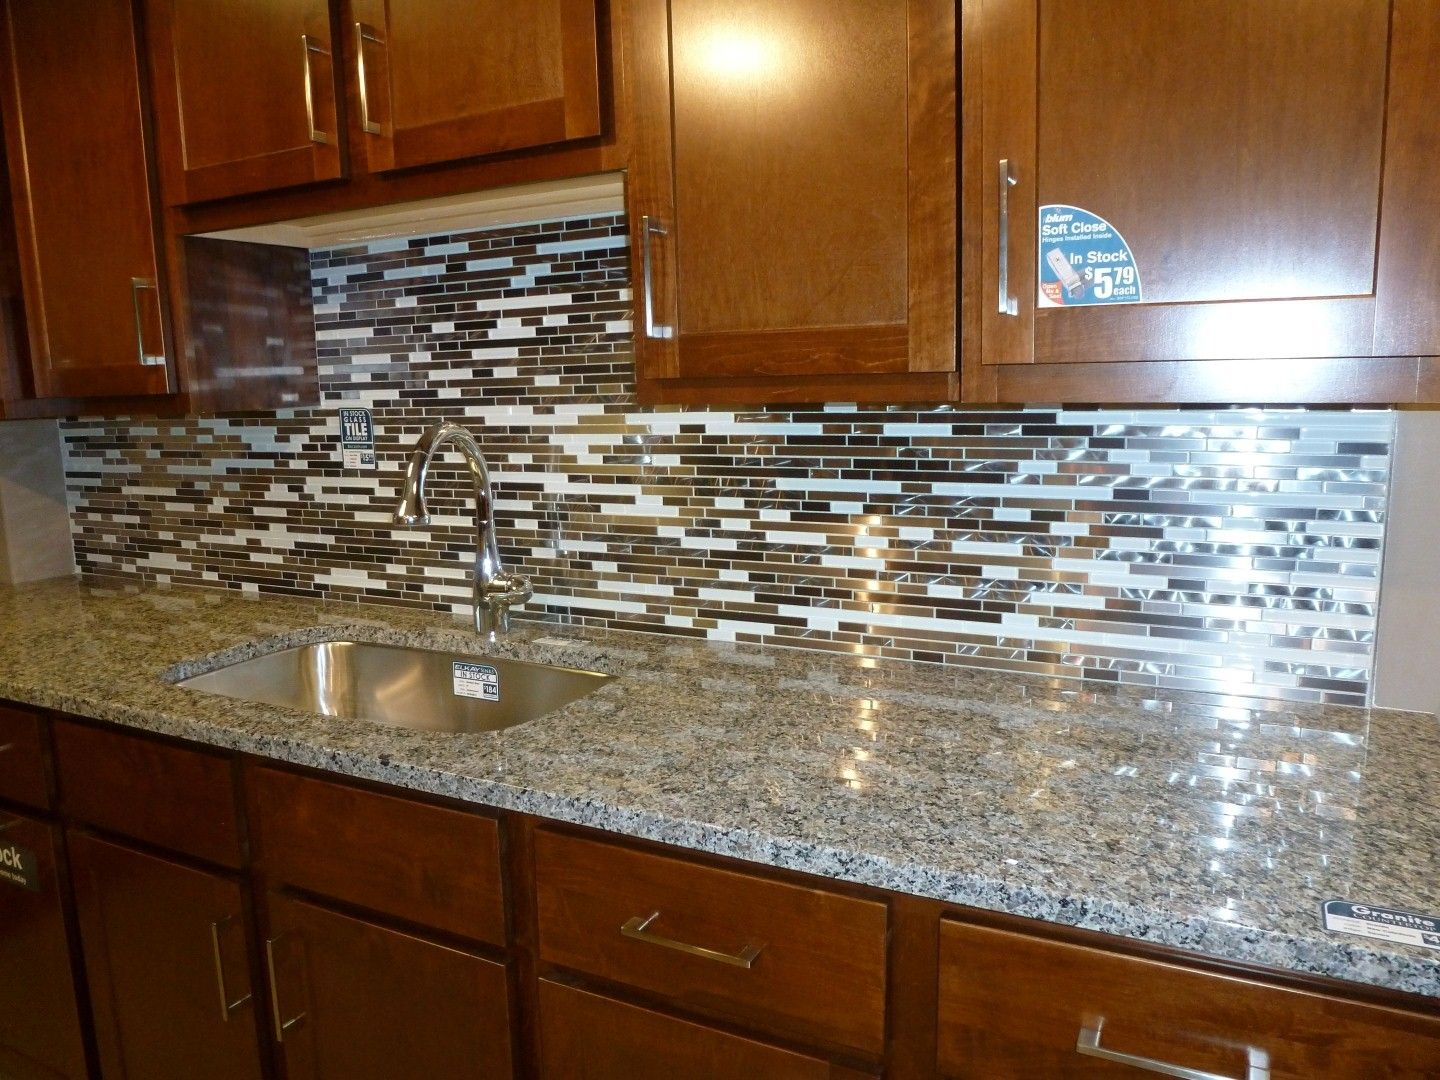 Glass tile kitchen backsplashes pictures metal and white glass random strips backsplash tile - Backsplash ideas for kitchen ...